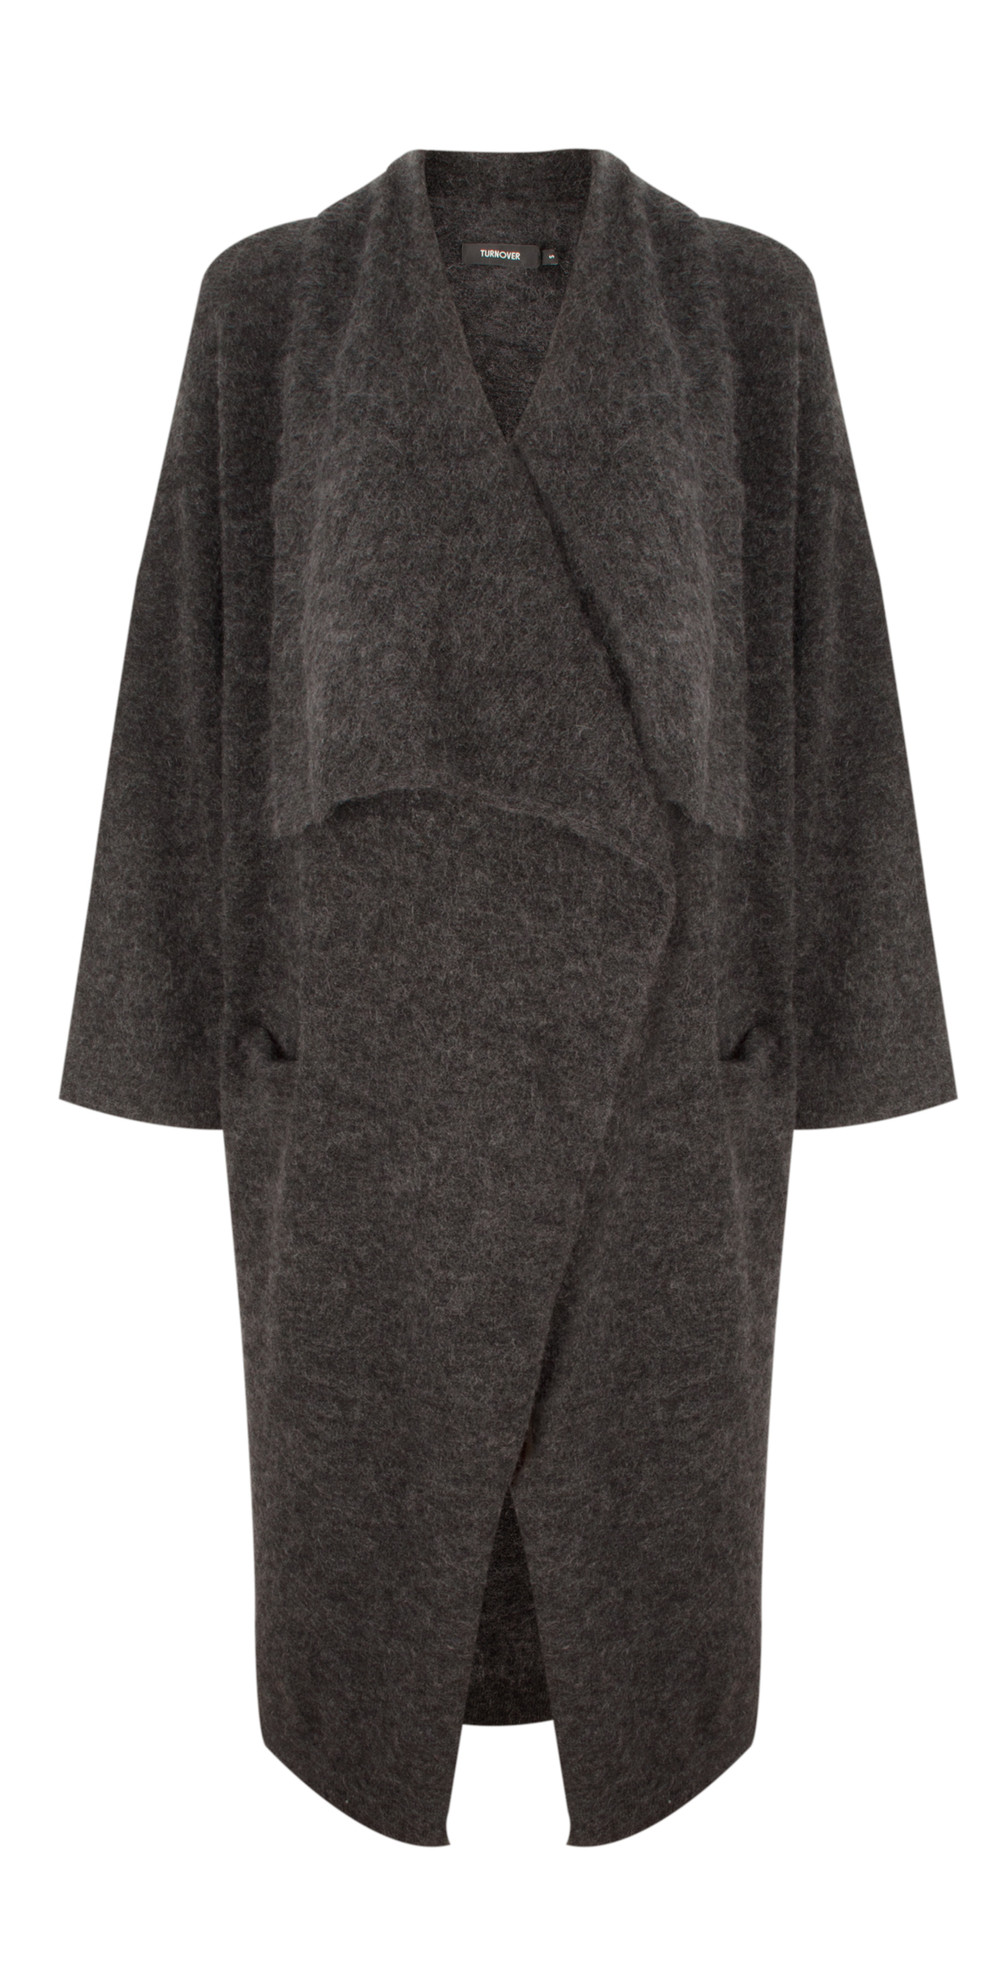 Turnover Oversized Waterfall Cardigan in Anthracite